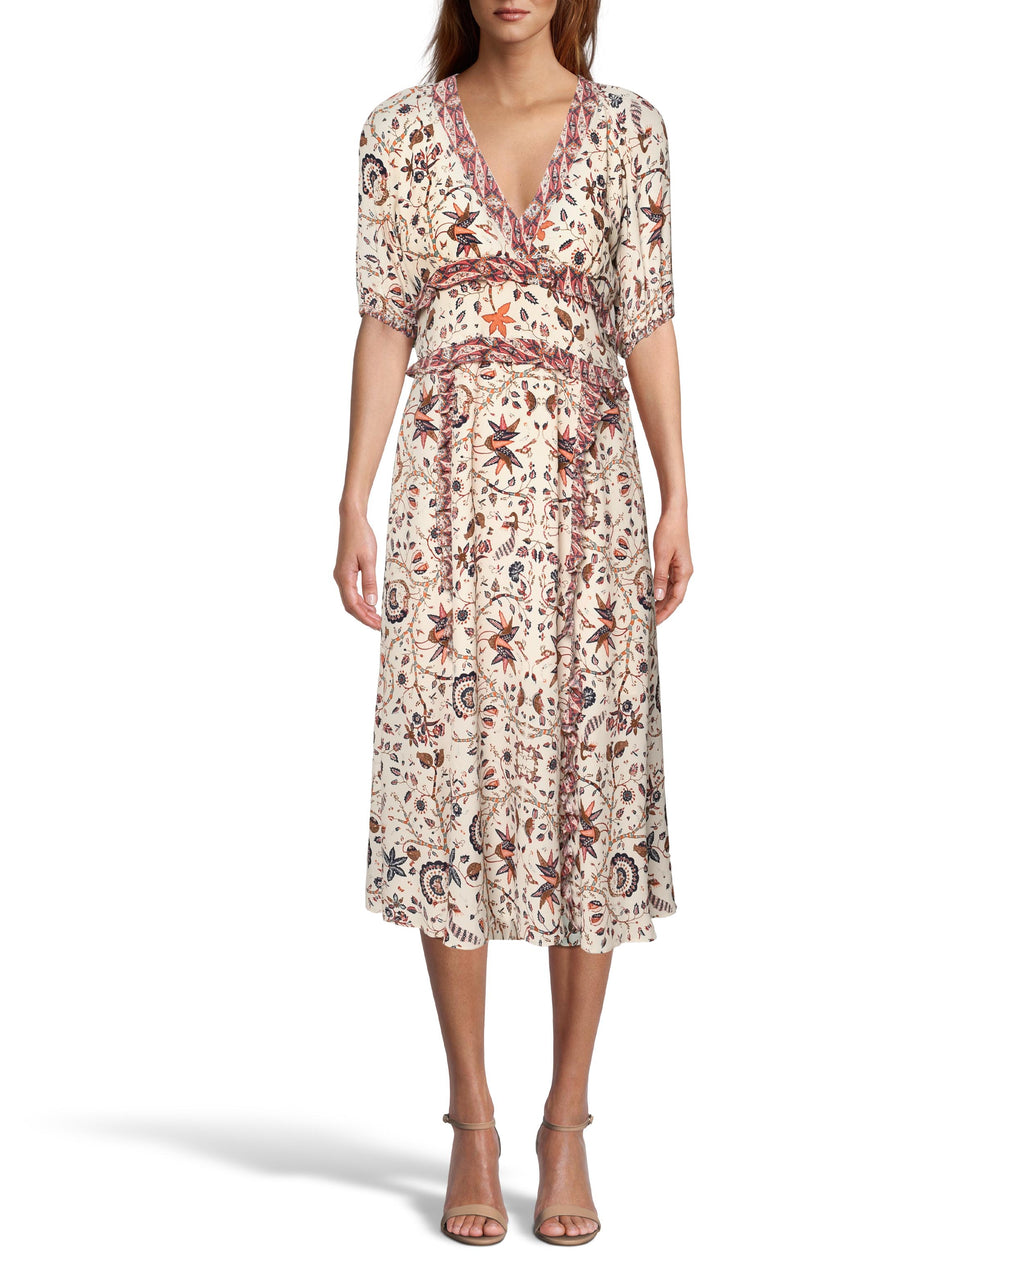 CD18486 - JAKARTA PRINT MIDI DRESS - dresses - midi - Balloon sleeves and ruffle details add dimension to this midi dress. Featuring a deep v-neckline, cuffed sleeves and contrasting prints. Add 1 line break Stylist Tip: Style with sandals or sneakers for a casual but cool look.